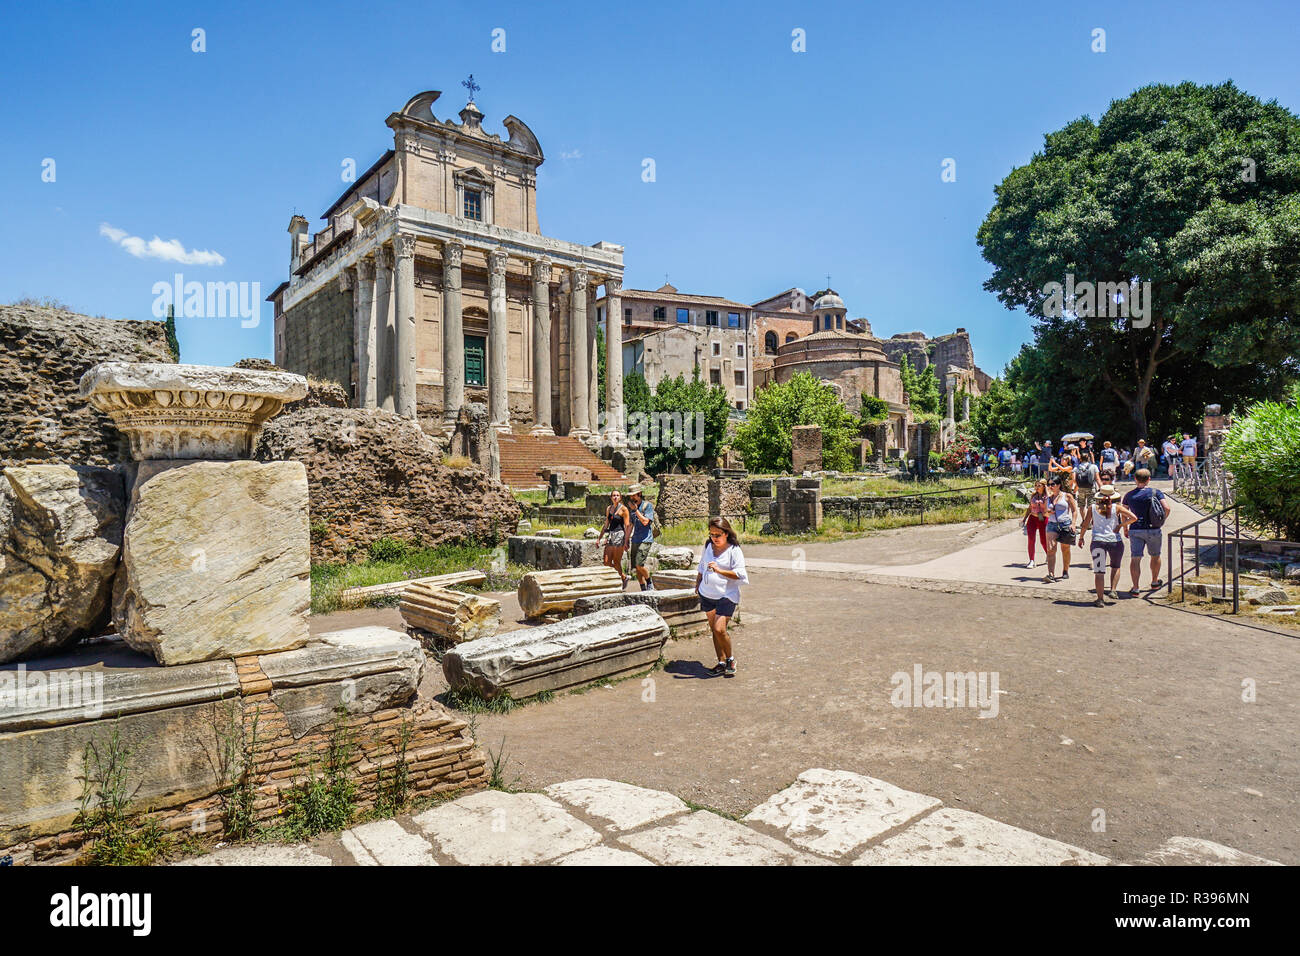 Via Sacra at the Roman Forum, the ancient city of Rome, in the background the Antonius and Faustina Temple which became the Church of San Lorenzo, Rom - Stock Image